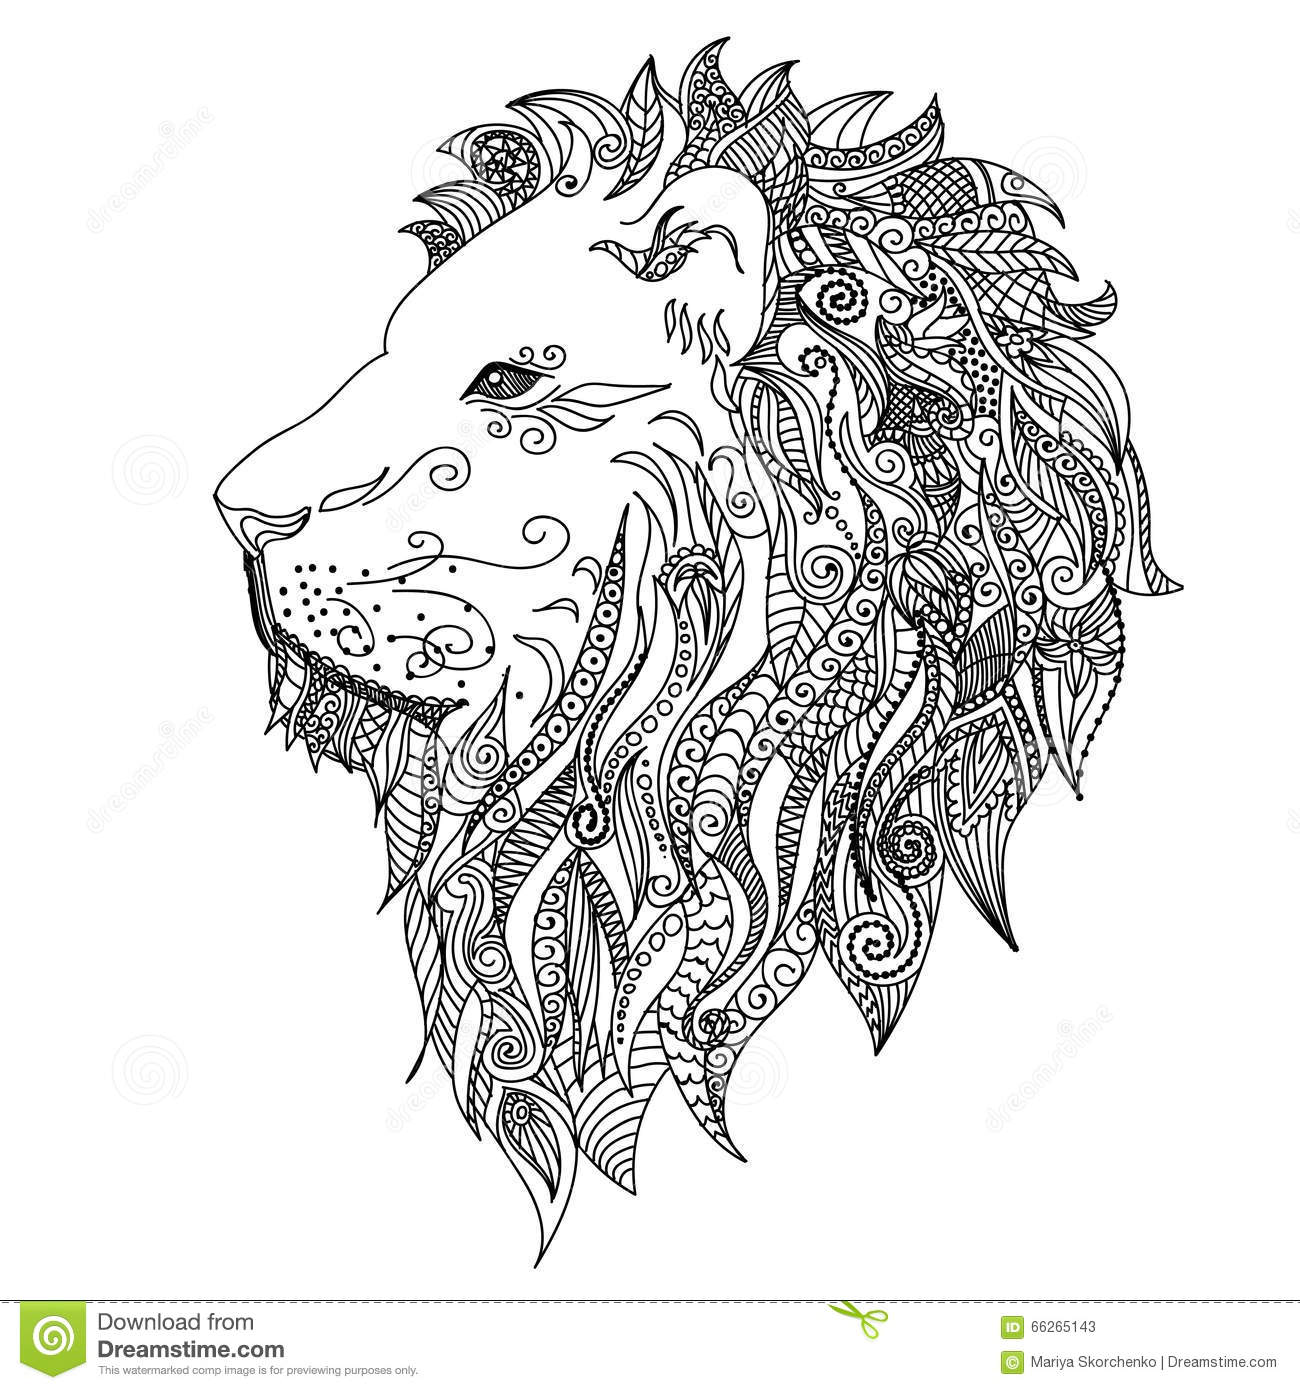 lion mehndi tattoo doodles style stock vector illustration of doodle drawn 66265143. Black Bedroom Furniture Sets. Home Design Ideas